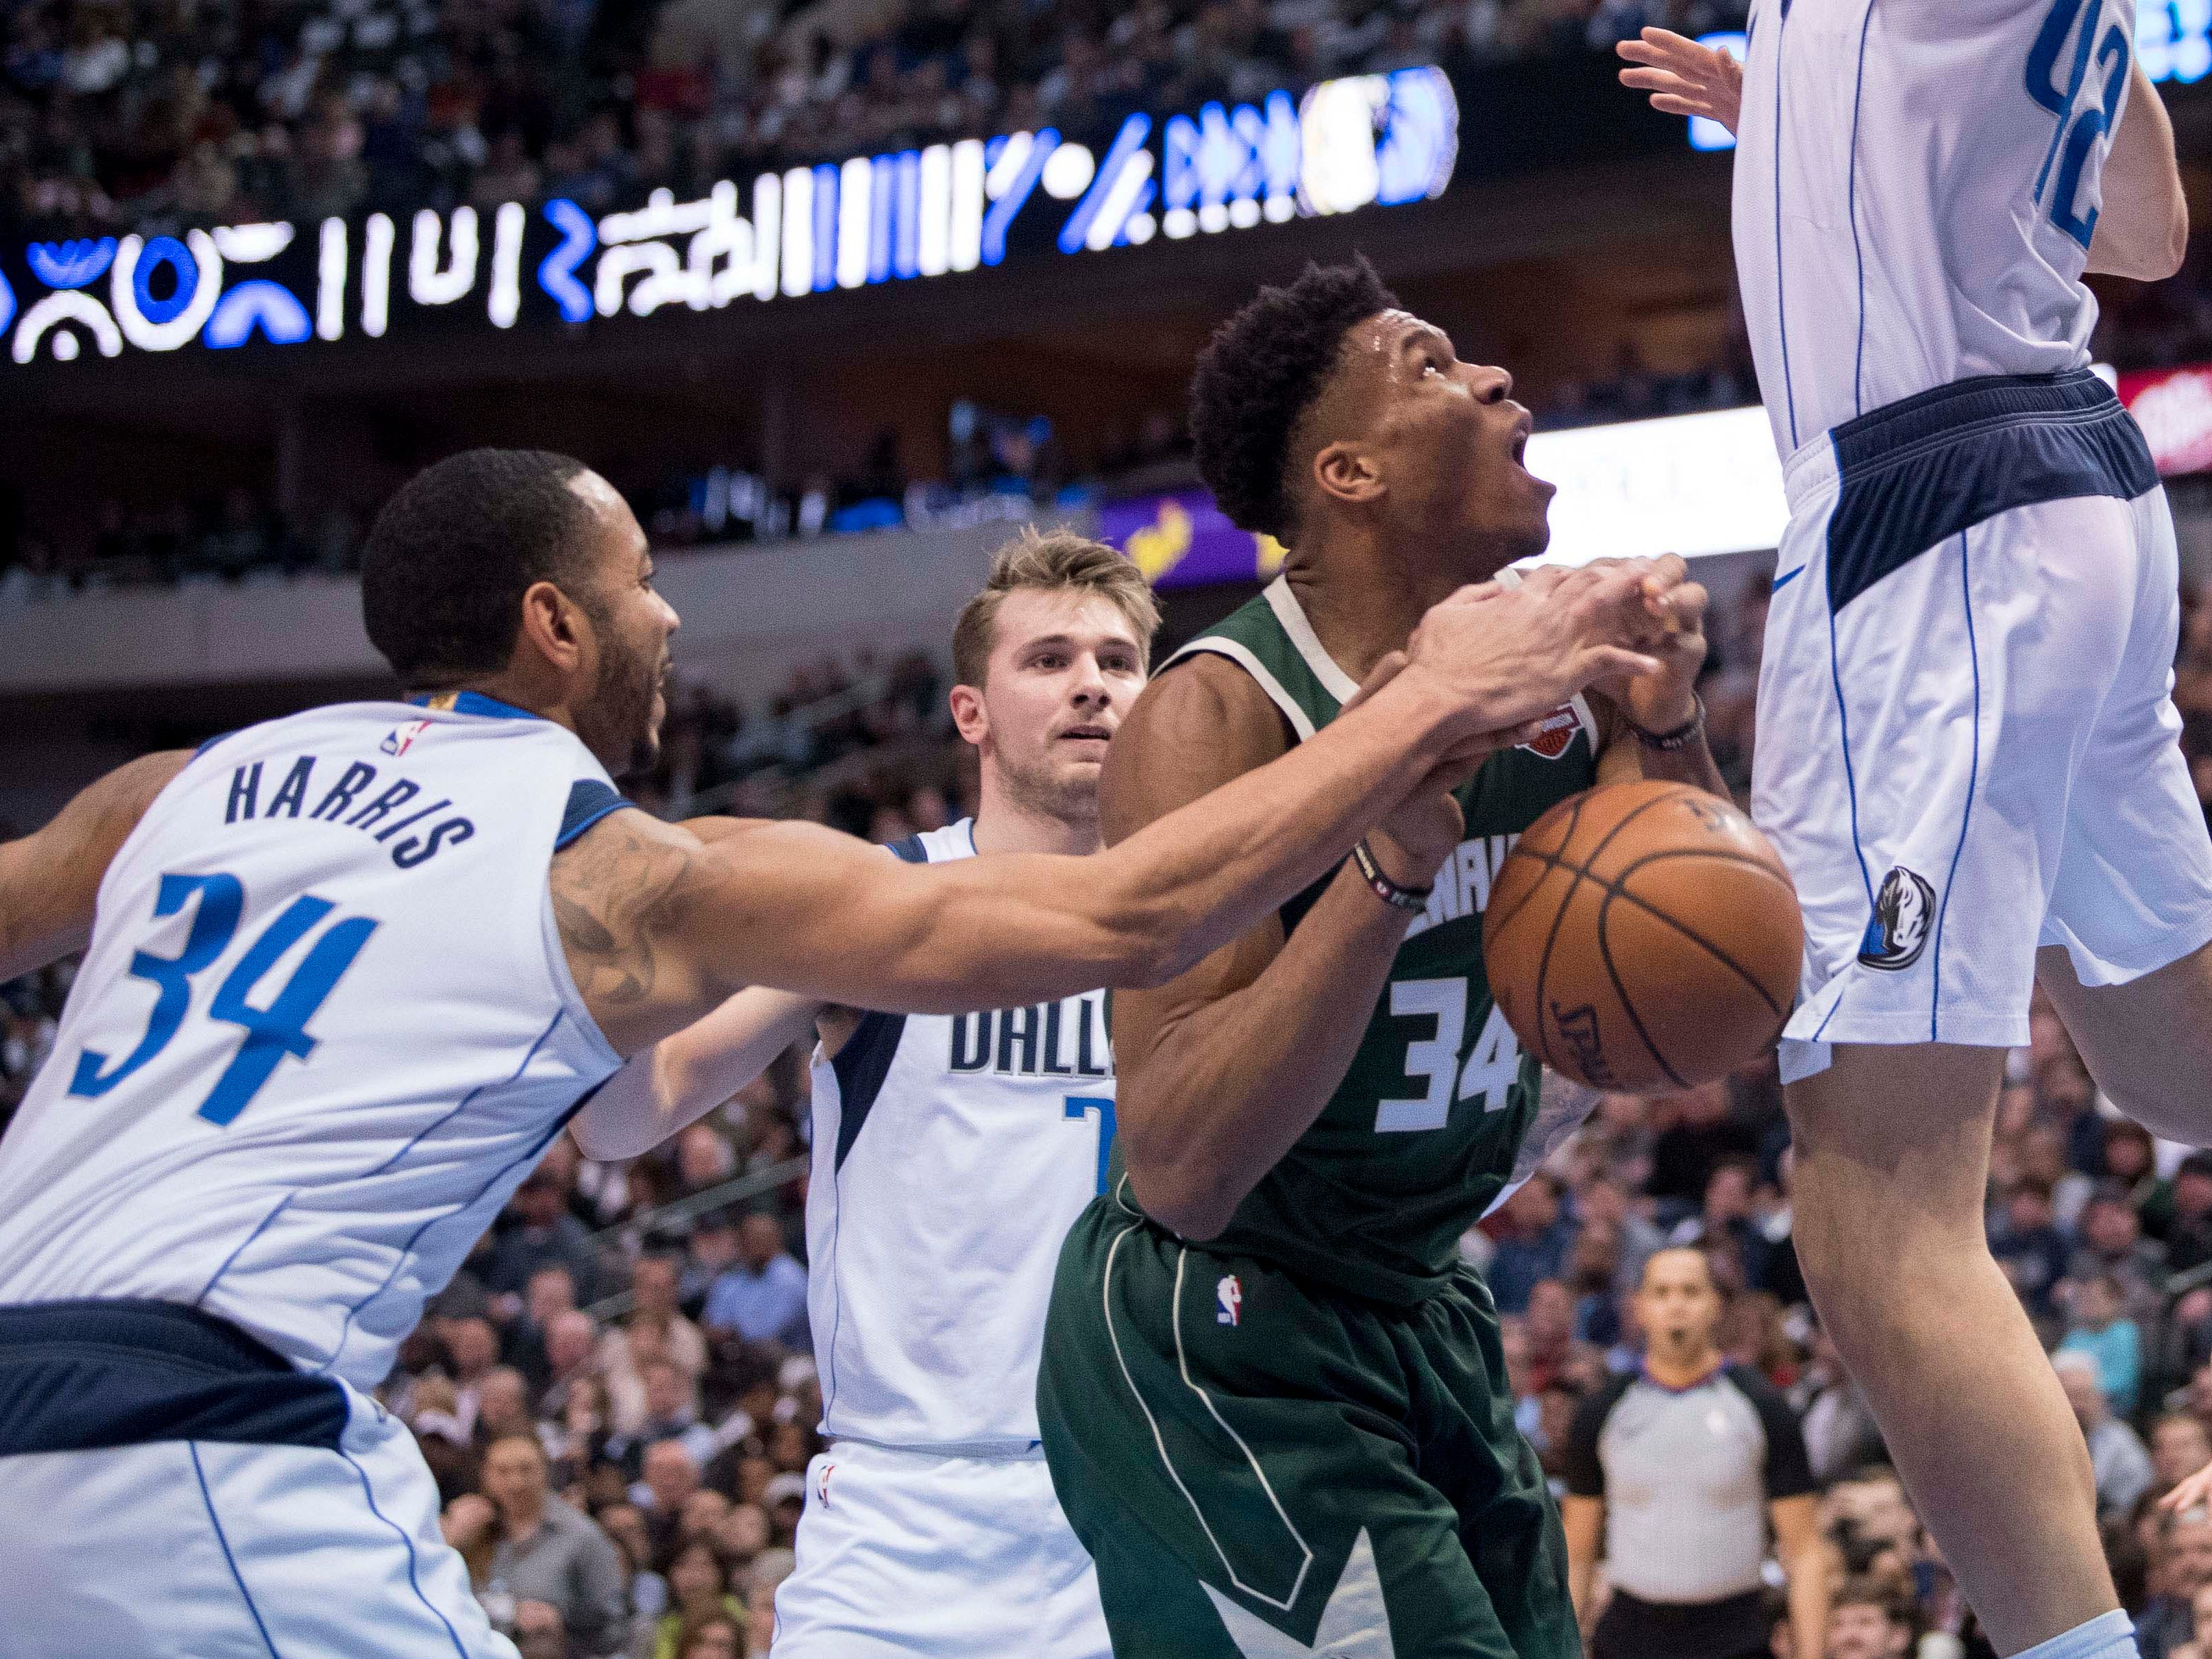 Mavericks guard Devin Harris, who starred at Wauwatosa East and Wisconsin, reaches in a fouls Bucks forward Giannis Antetokounmpo during the second quarter on Friday.